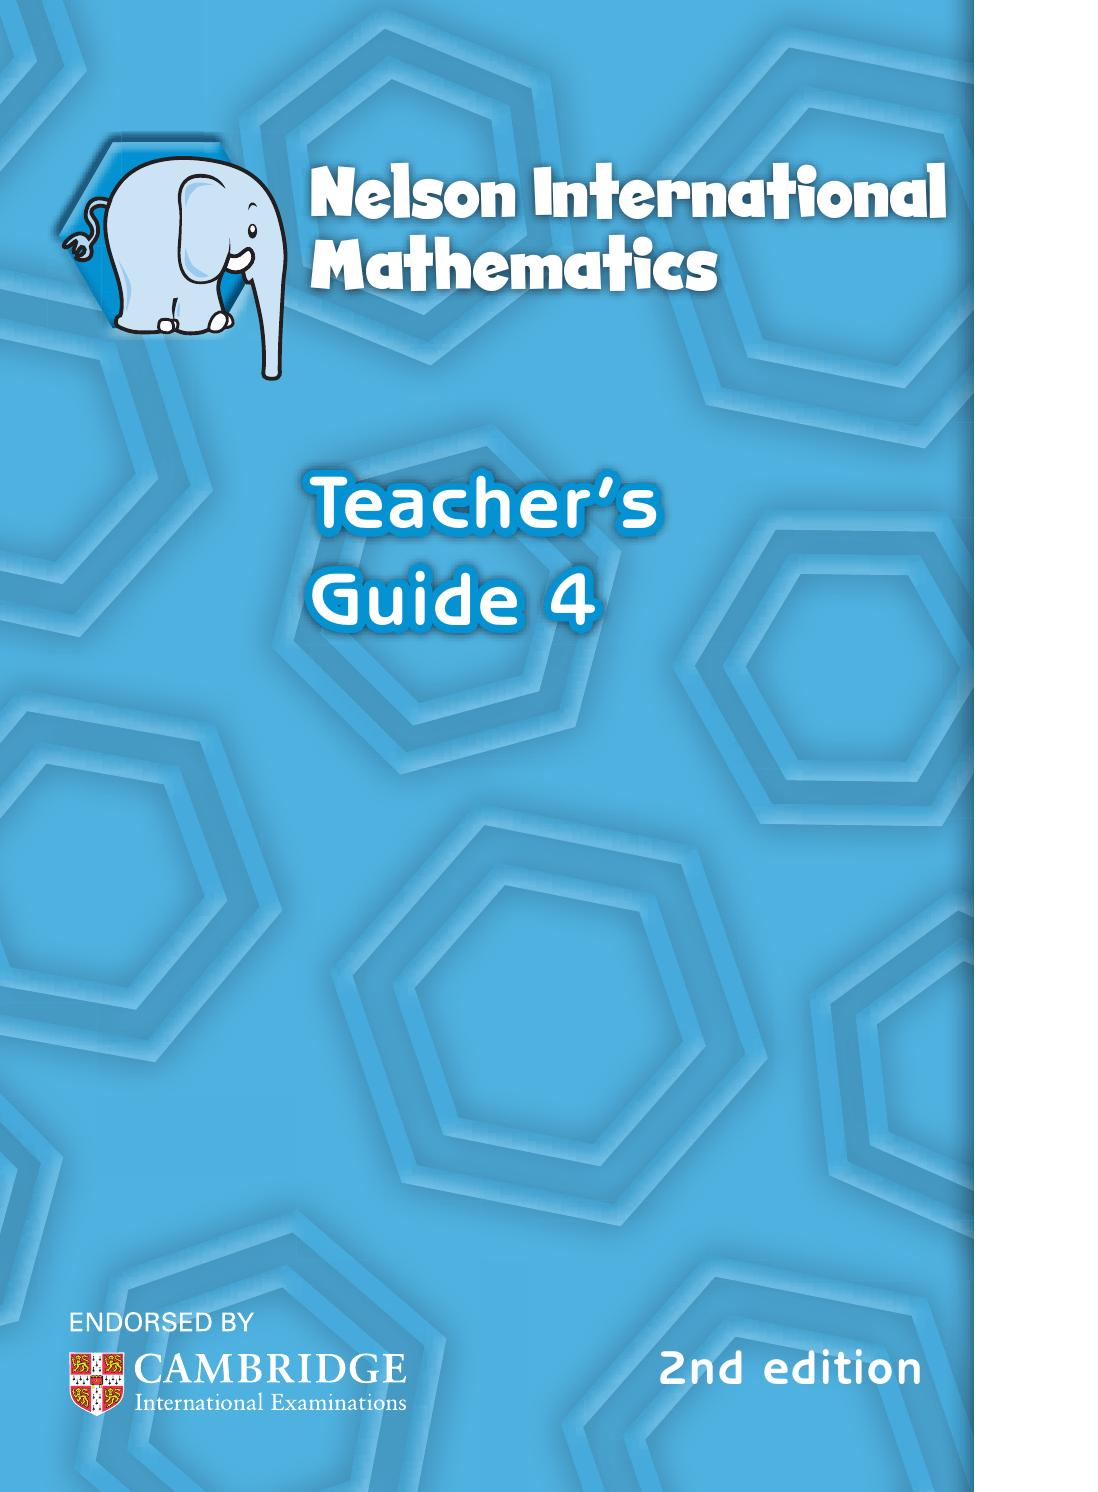 Nelson international maths teacher guide 4 by hany mufeid - issuu